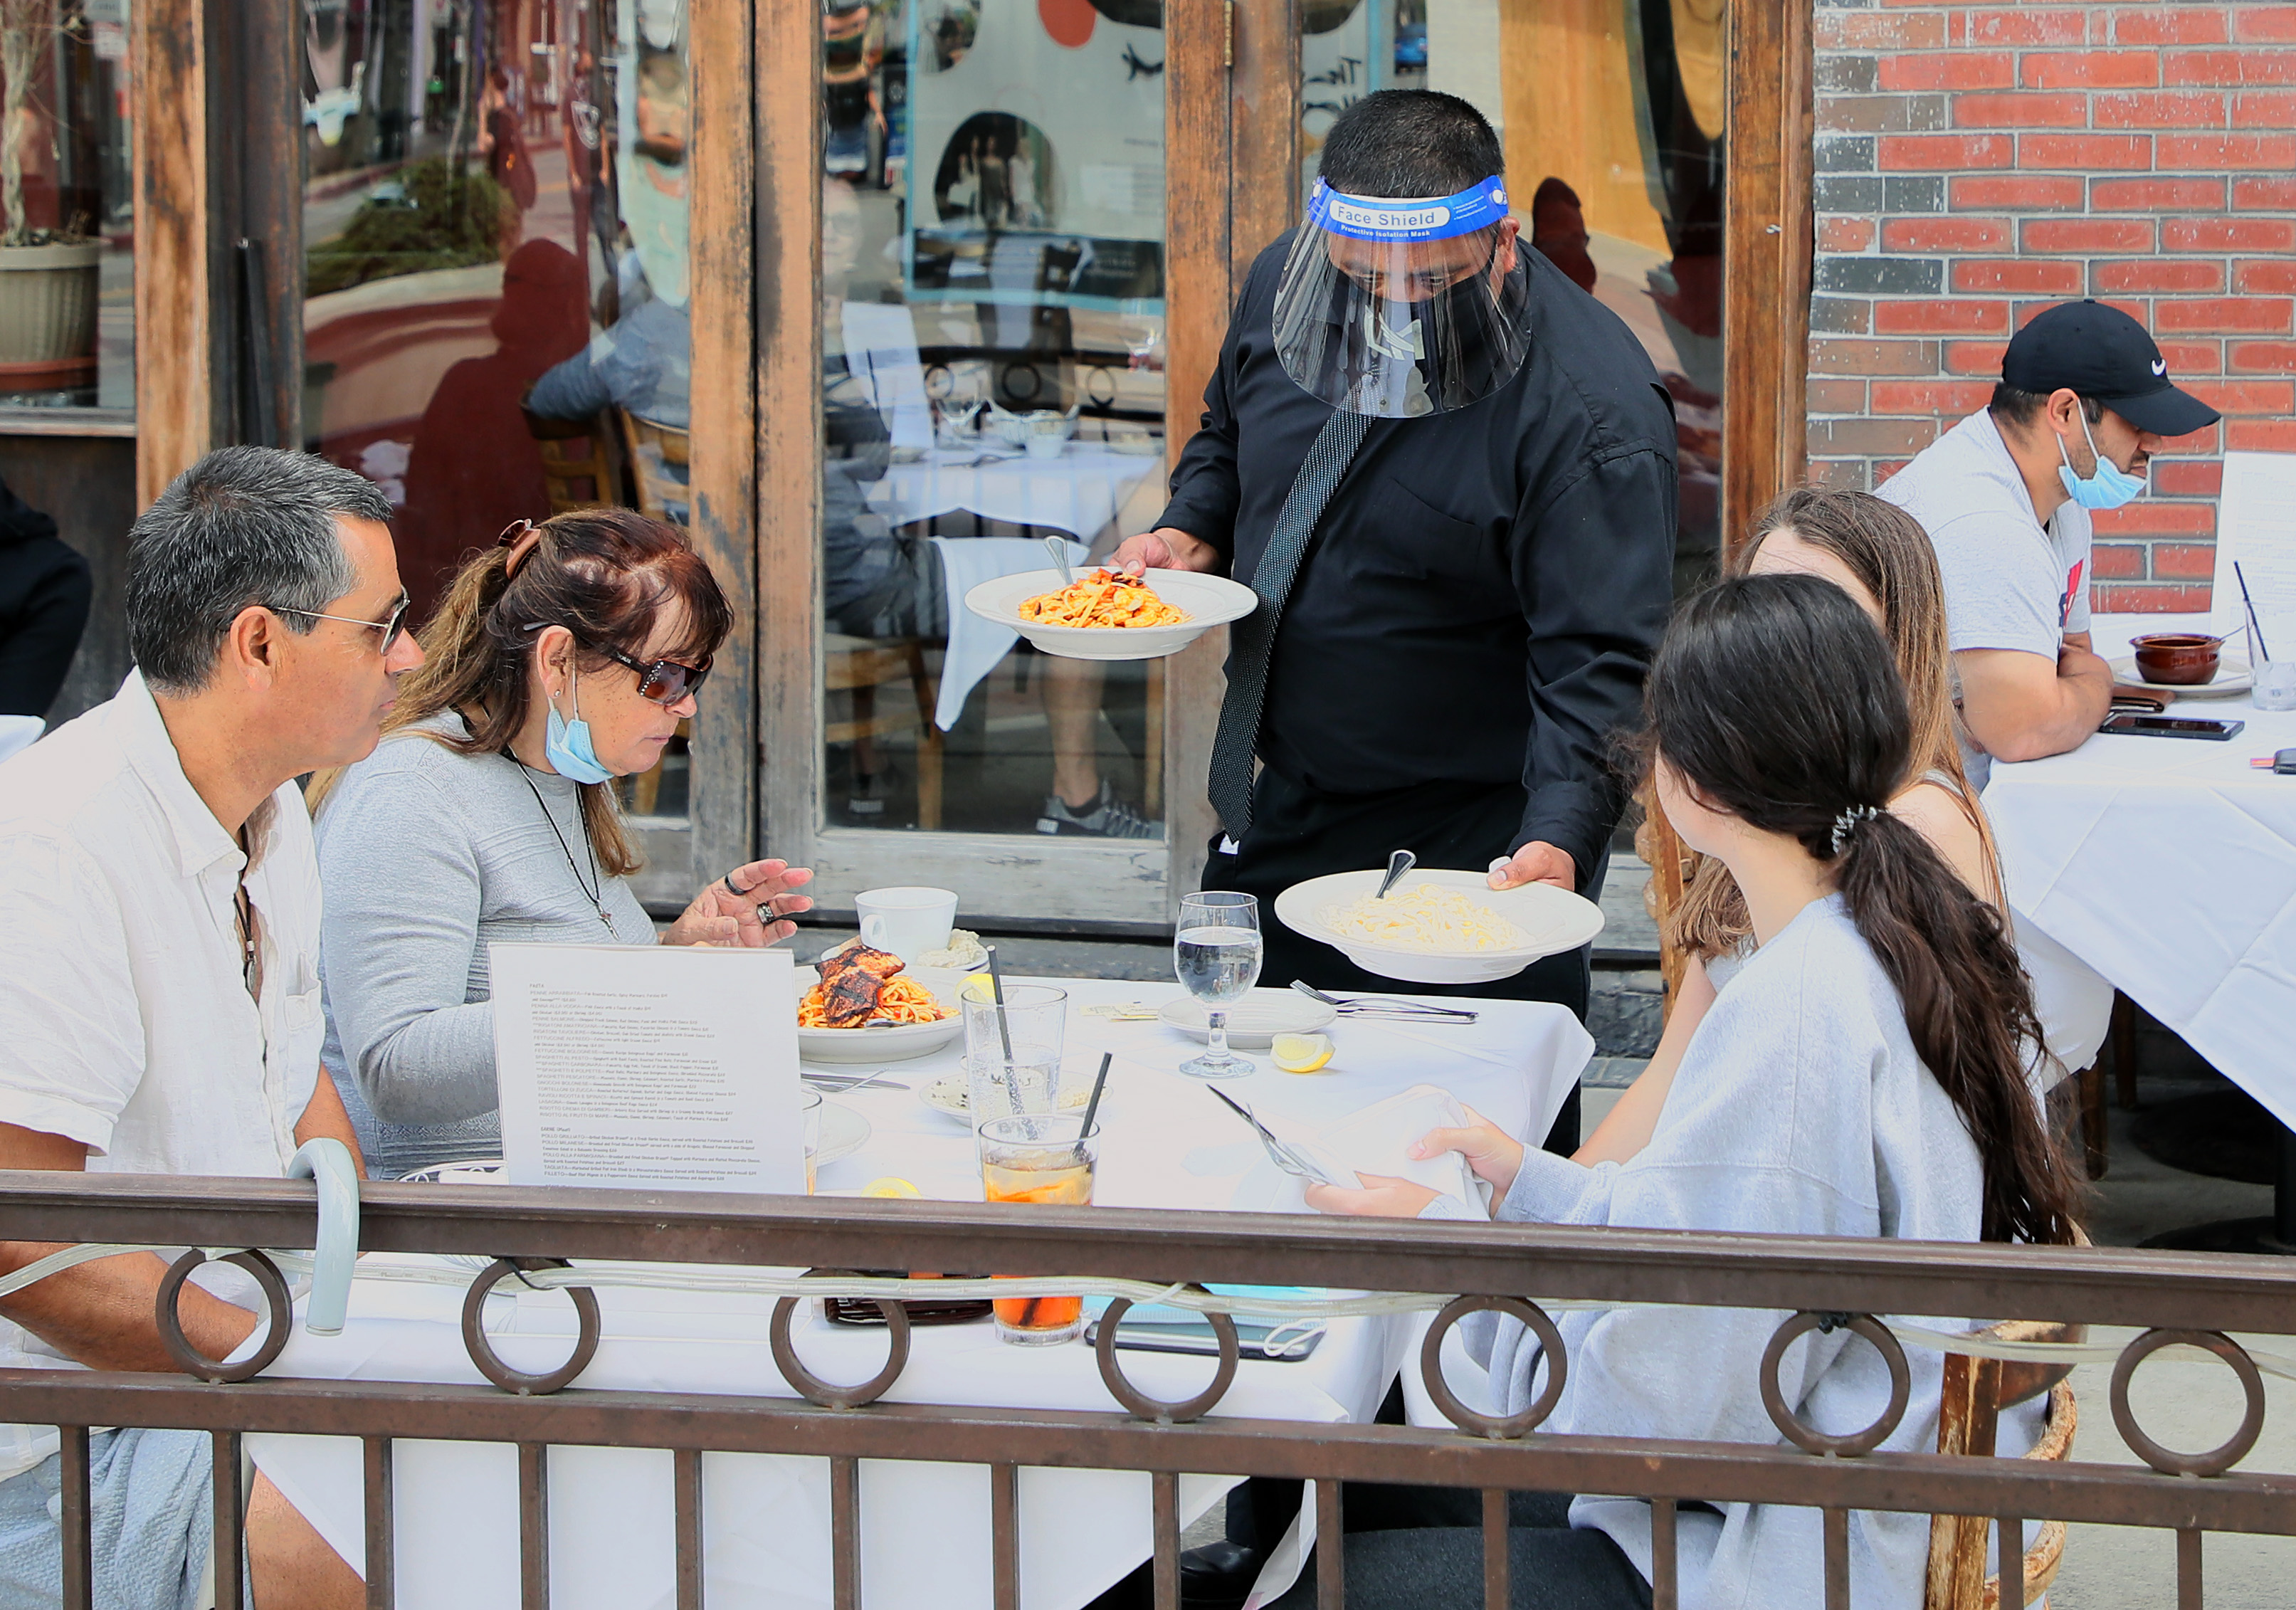 California restaurant set on fire due to mask policy: police